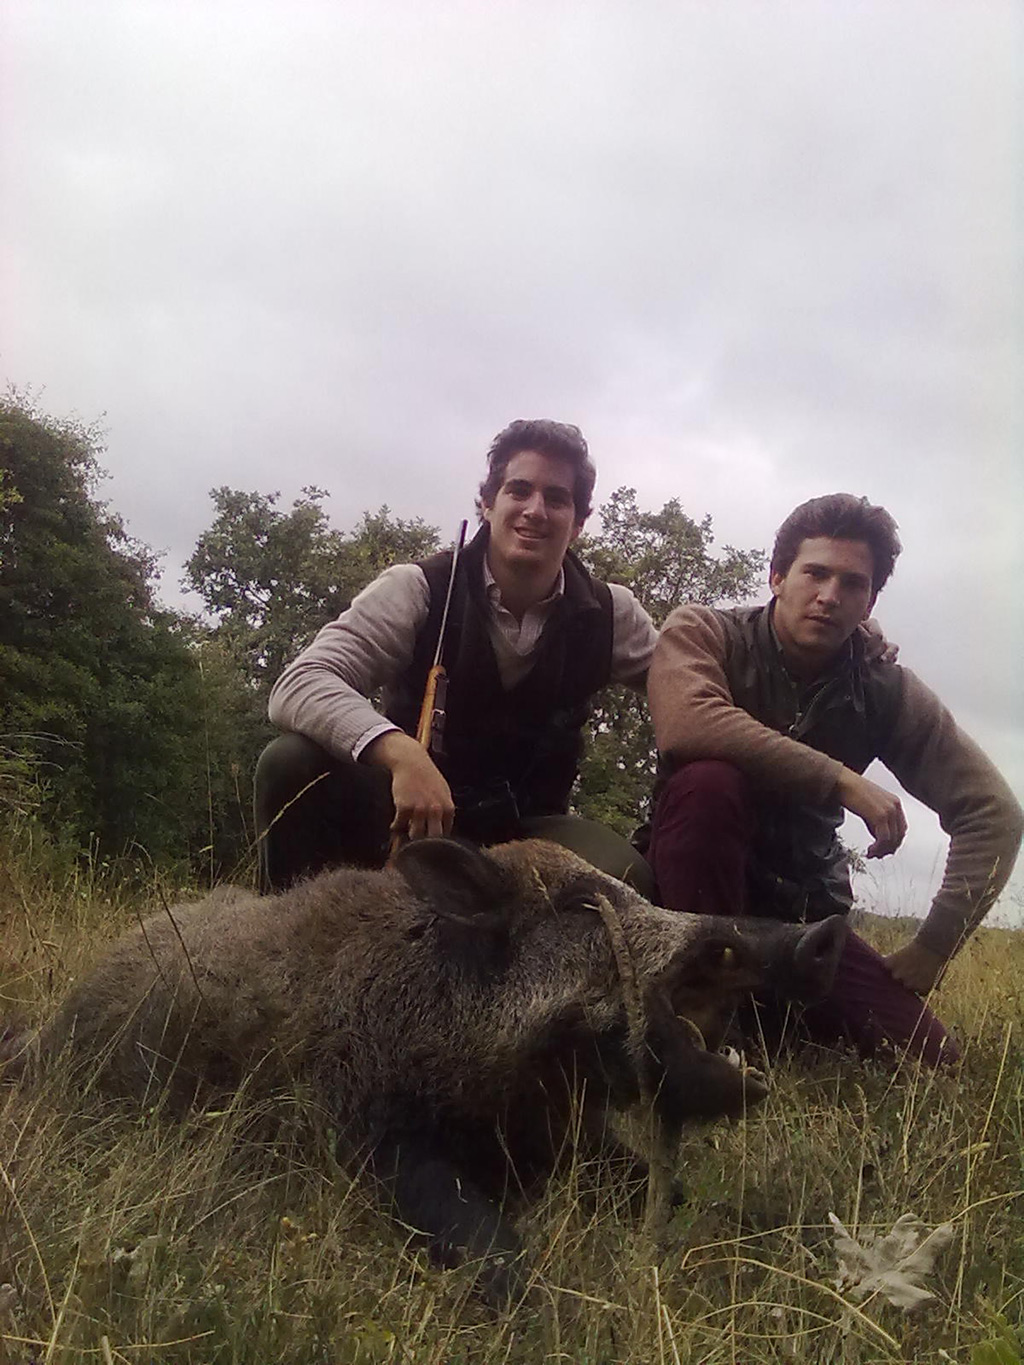 shooting-wildboar-spain